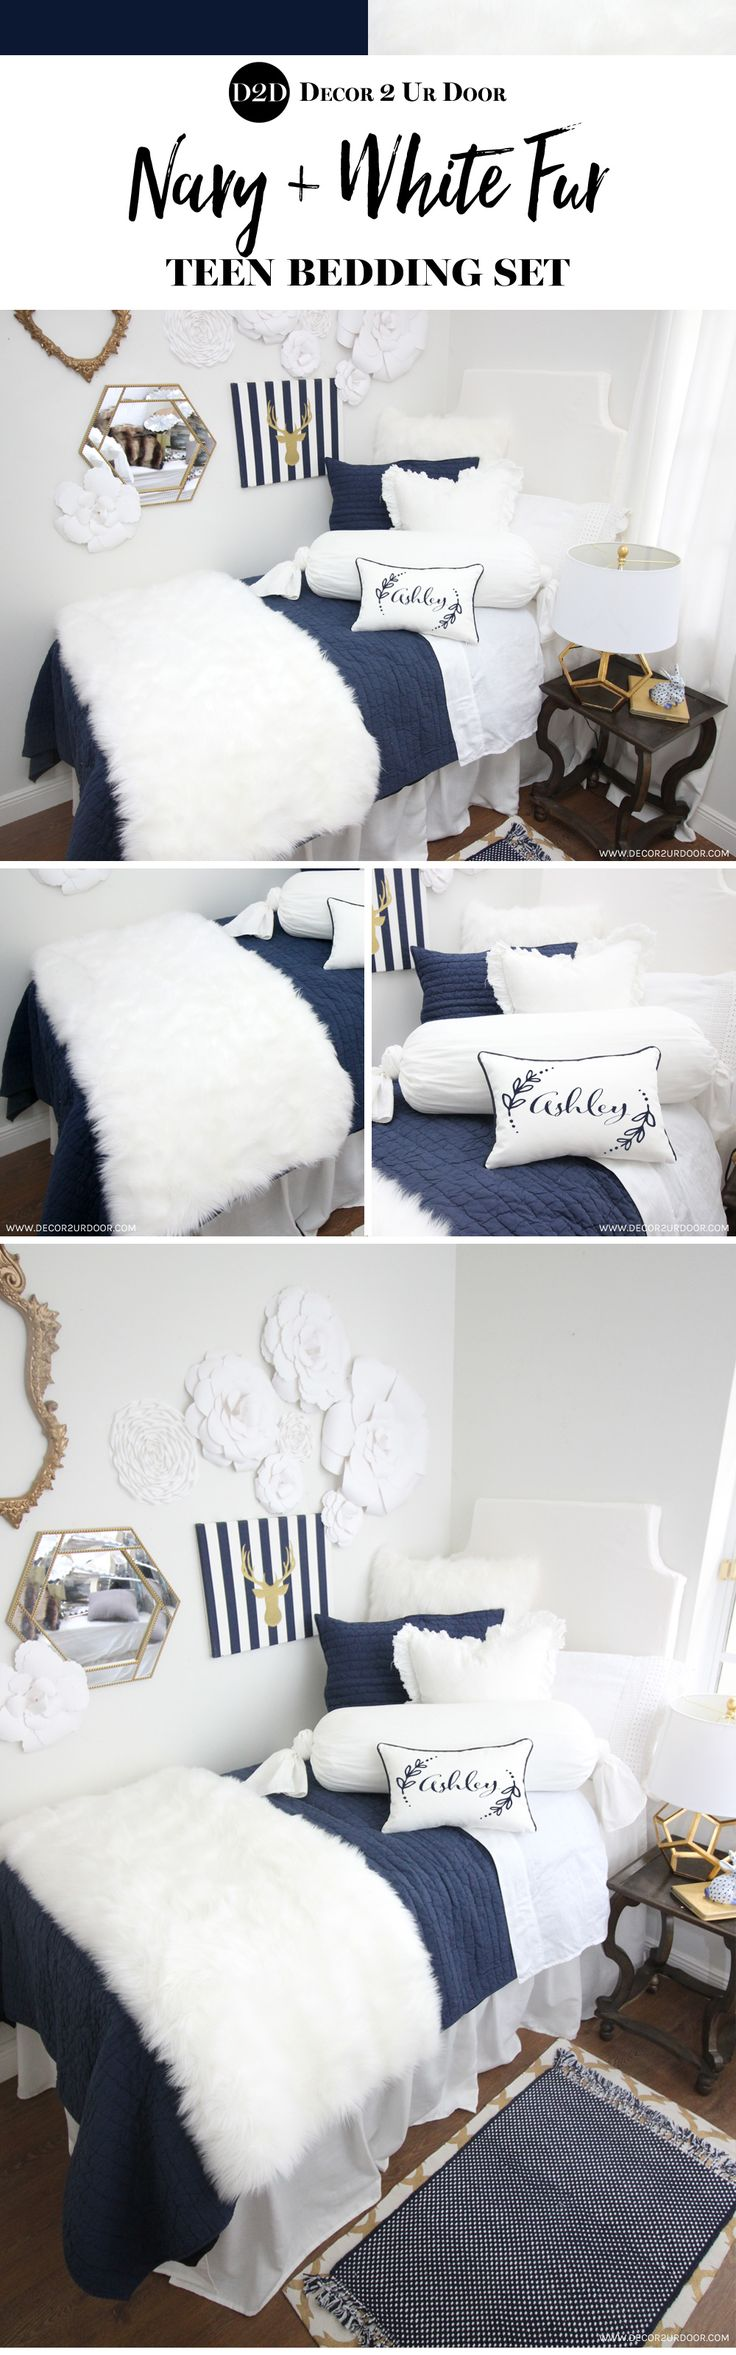 Navy and white, all right! This navy and white faux fur teen bedding features textured furs, linens & ties. Navy and white is a teen bedding trend we know you will love! Sleek, clean, and a bit sassy with a flirty flare!